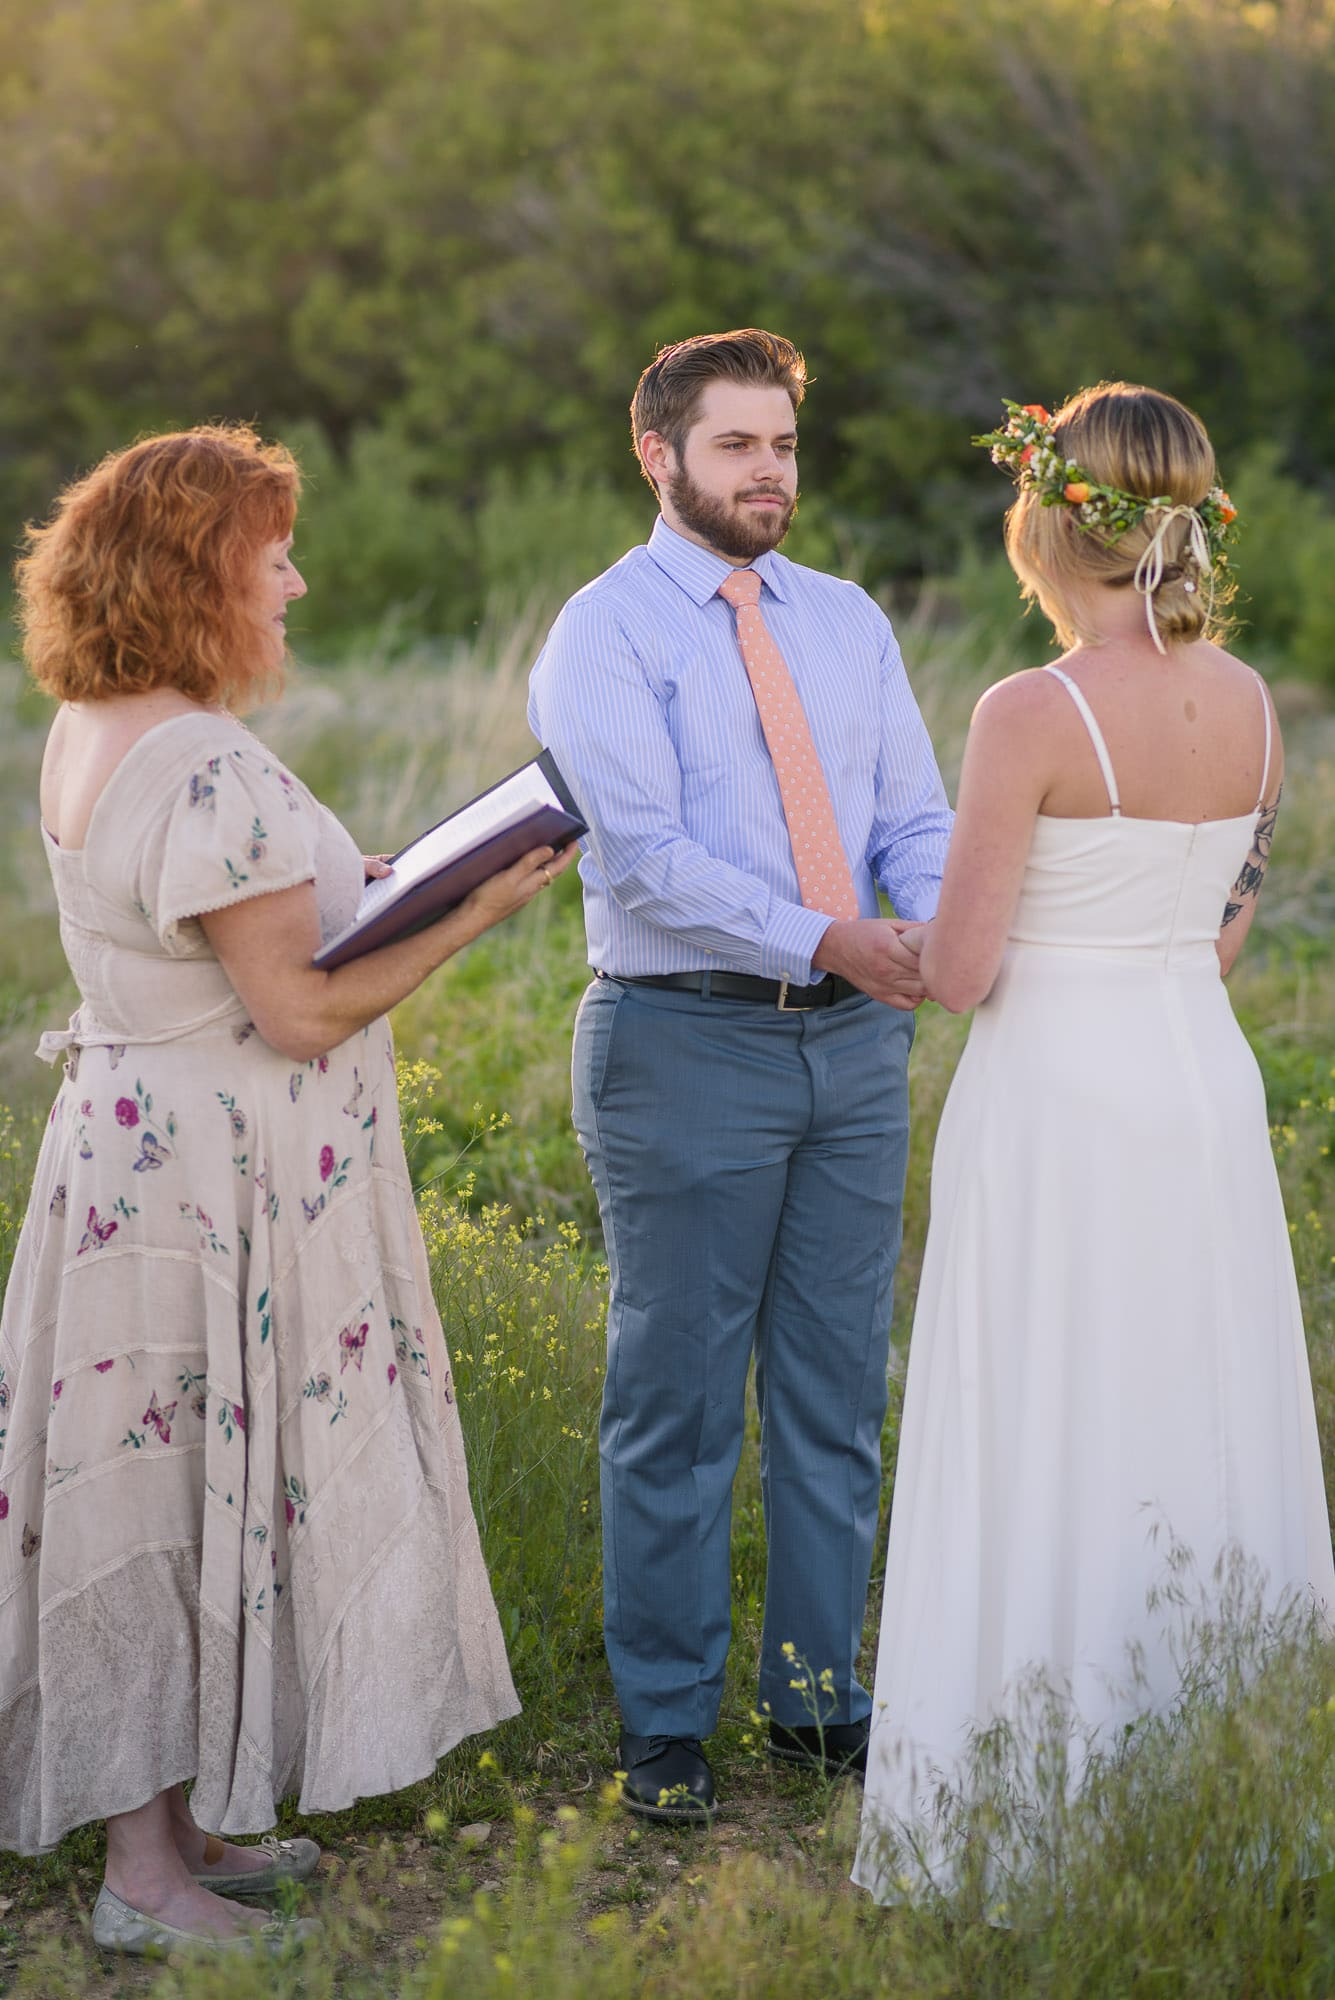 028_Alan_and_Heidi_Kensey_Josh_Big_Bear_Elopement